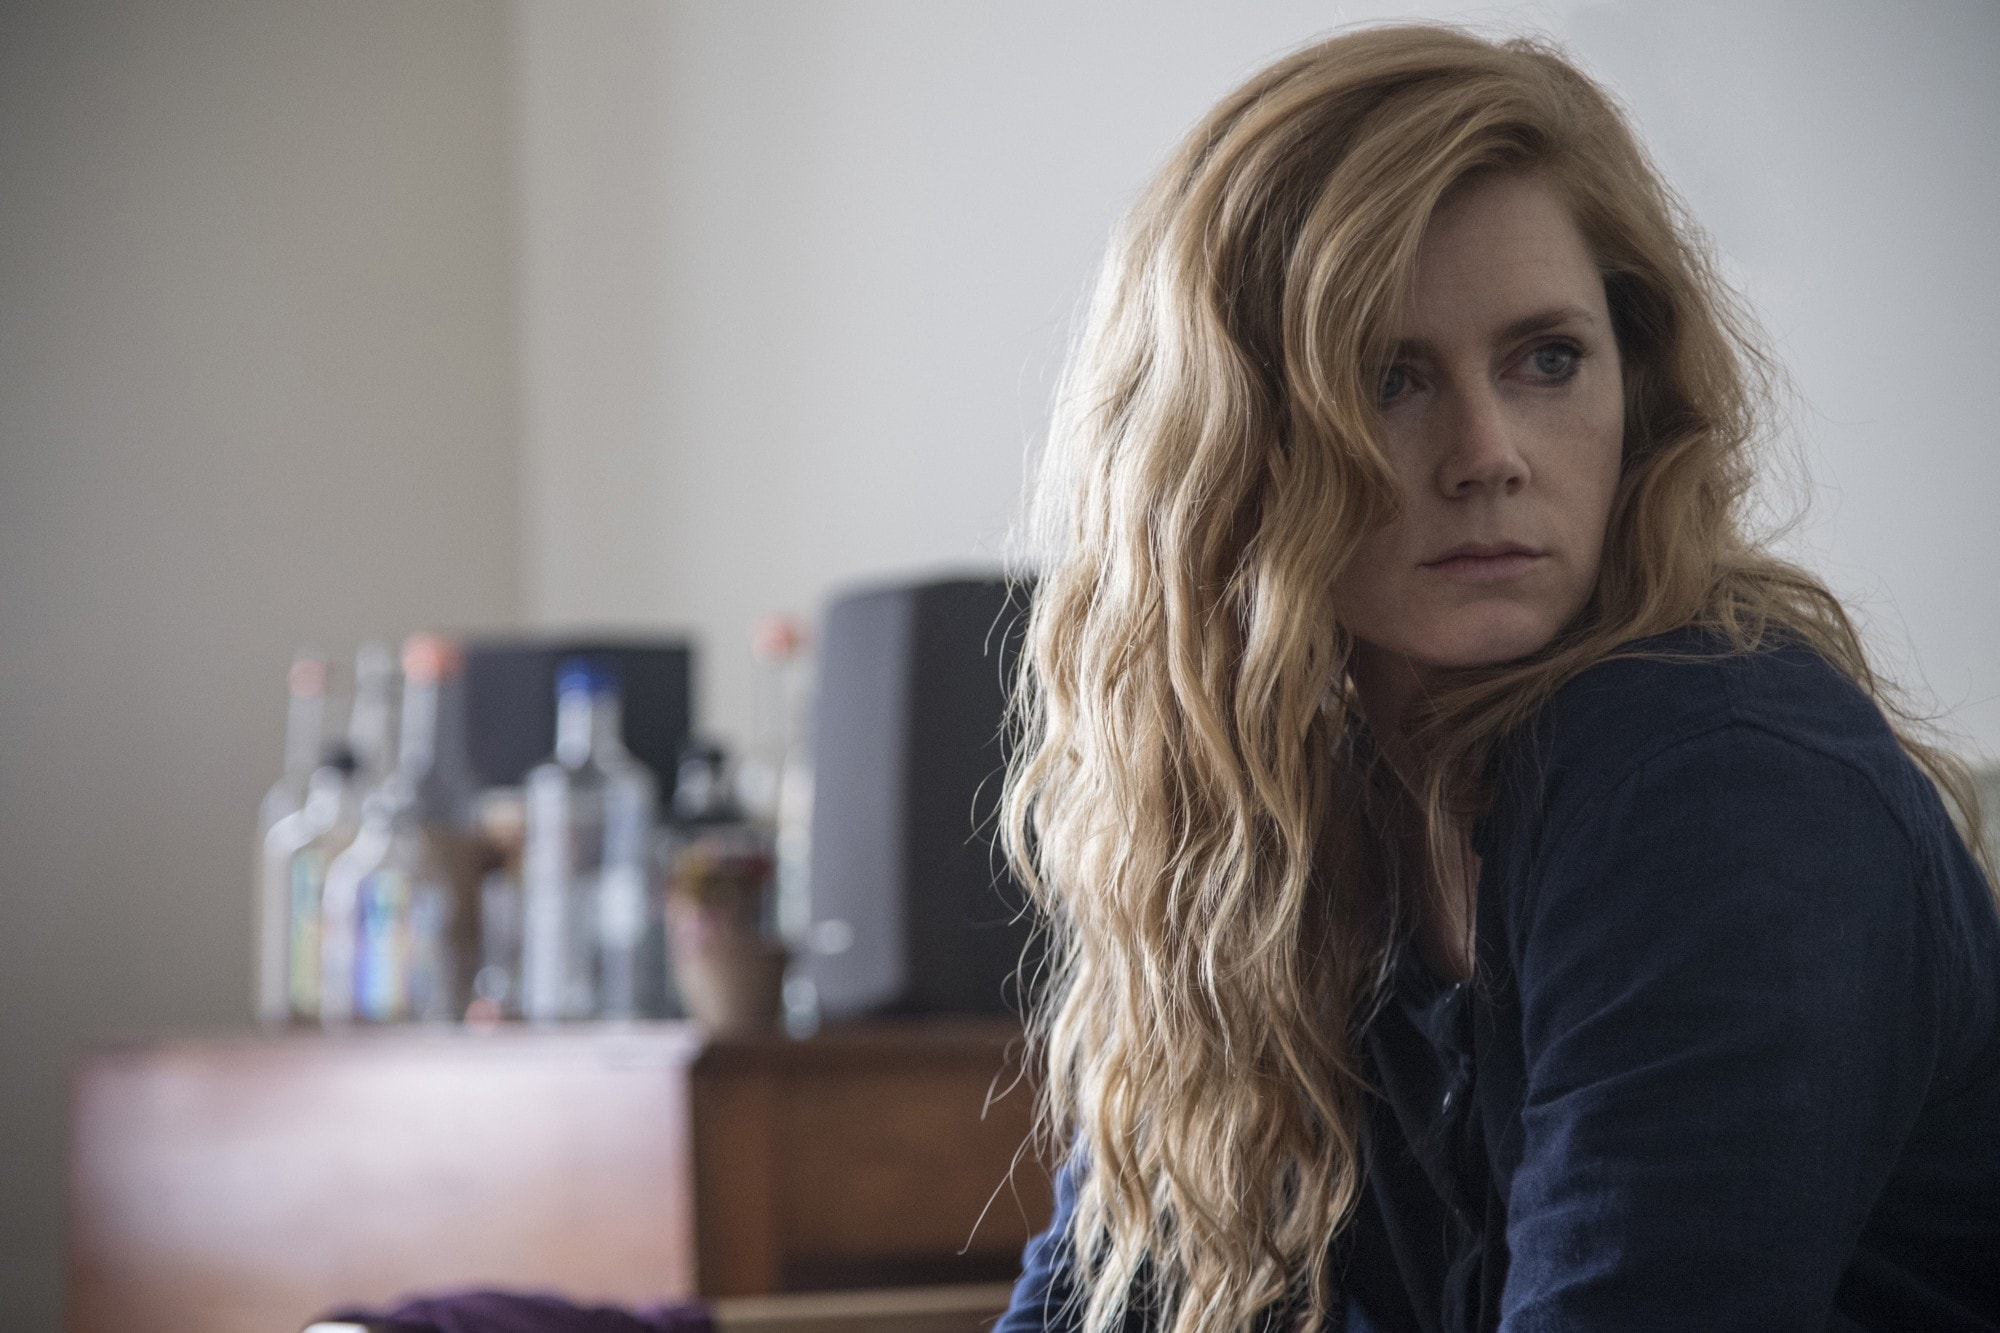 Sharp Objects moves at a meticulous pace and sets a taut atmosphere.